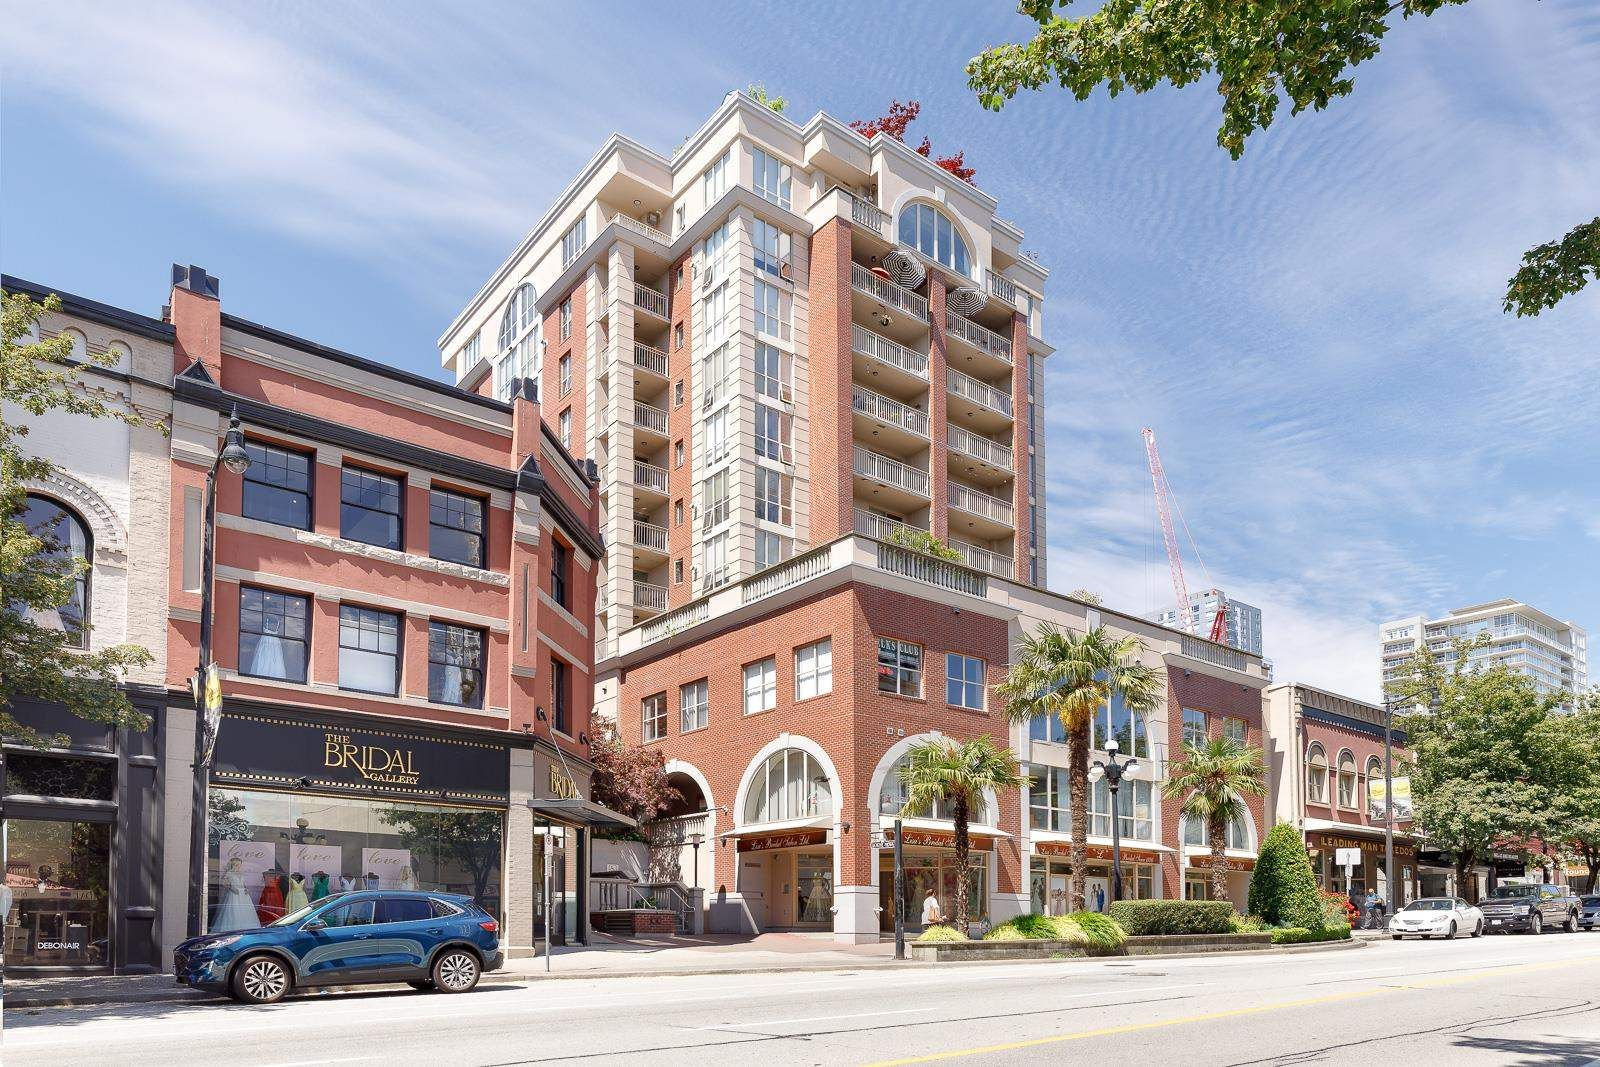 """Main Photo: 407 680 CLARKSON Street in New Westminster: Downtown NW Condo for sale in """"THE CLARKSON"""" : MLS®# R2595710"""